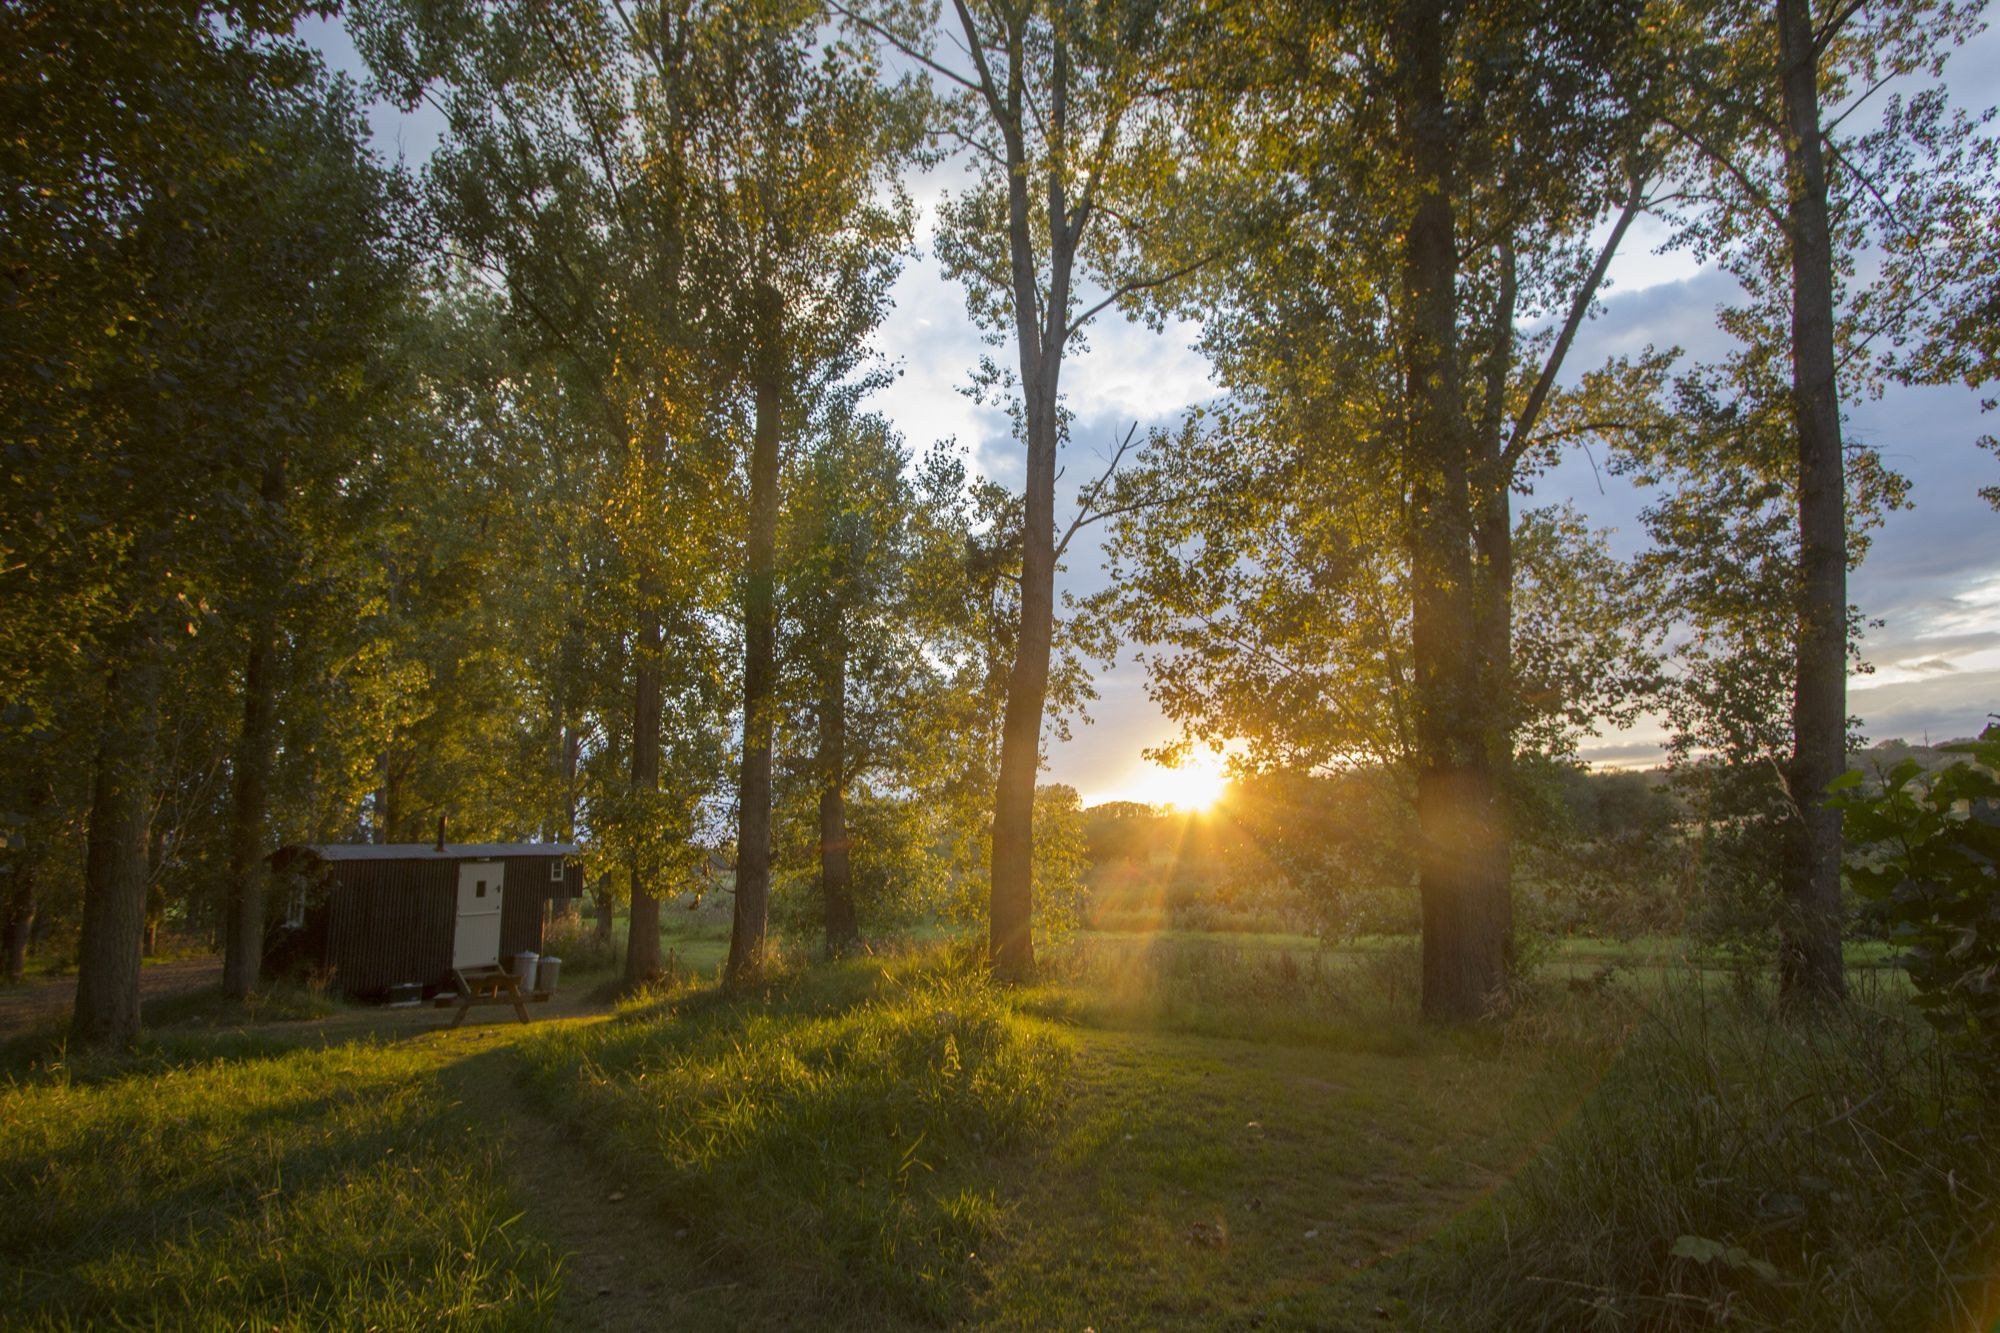 Glamping in Bodiam – Cool Camping